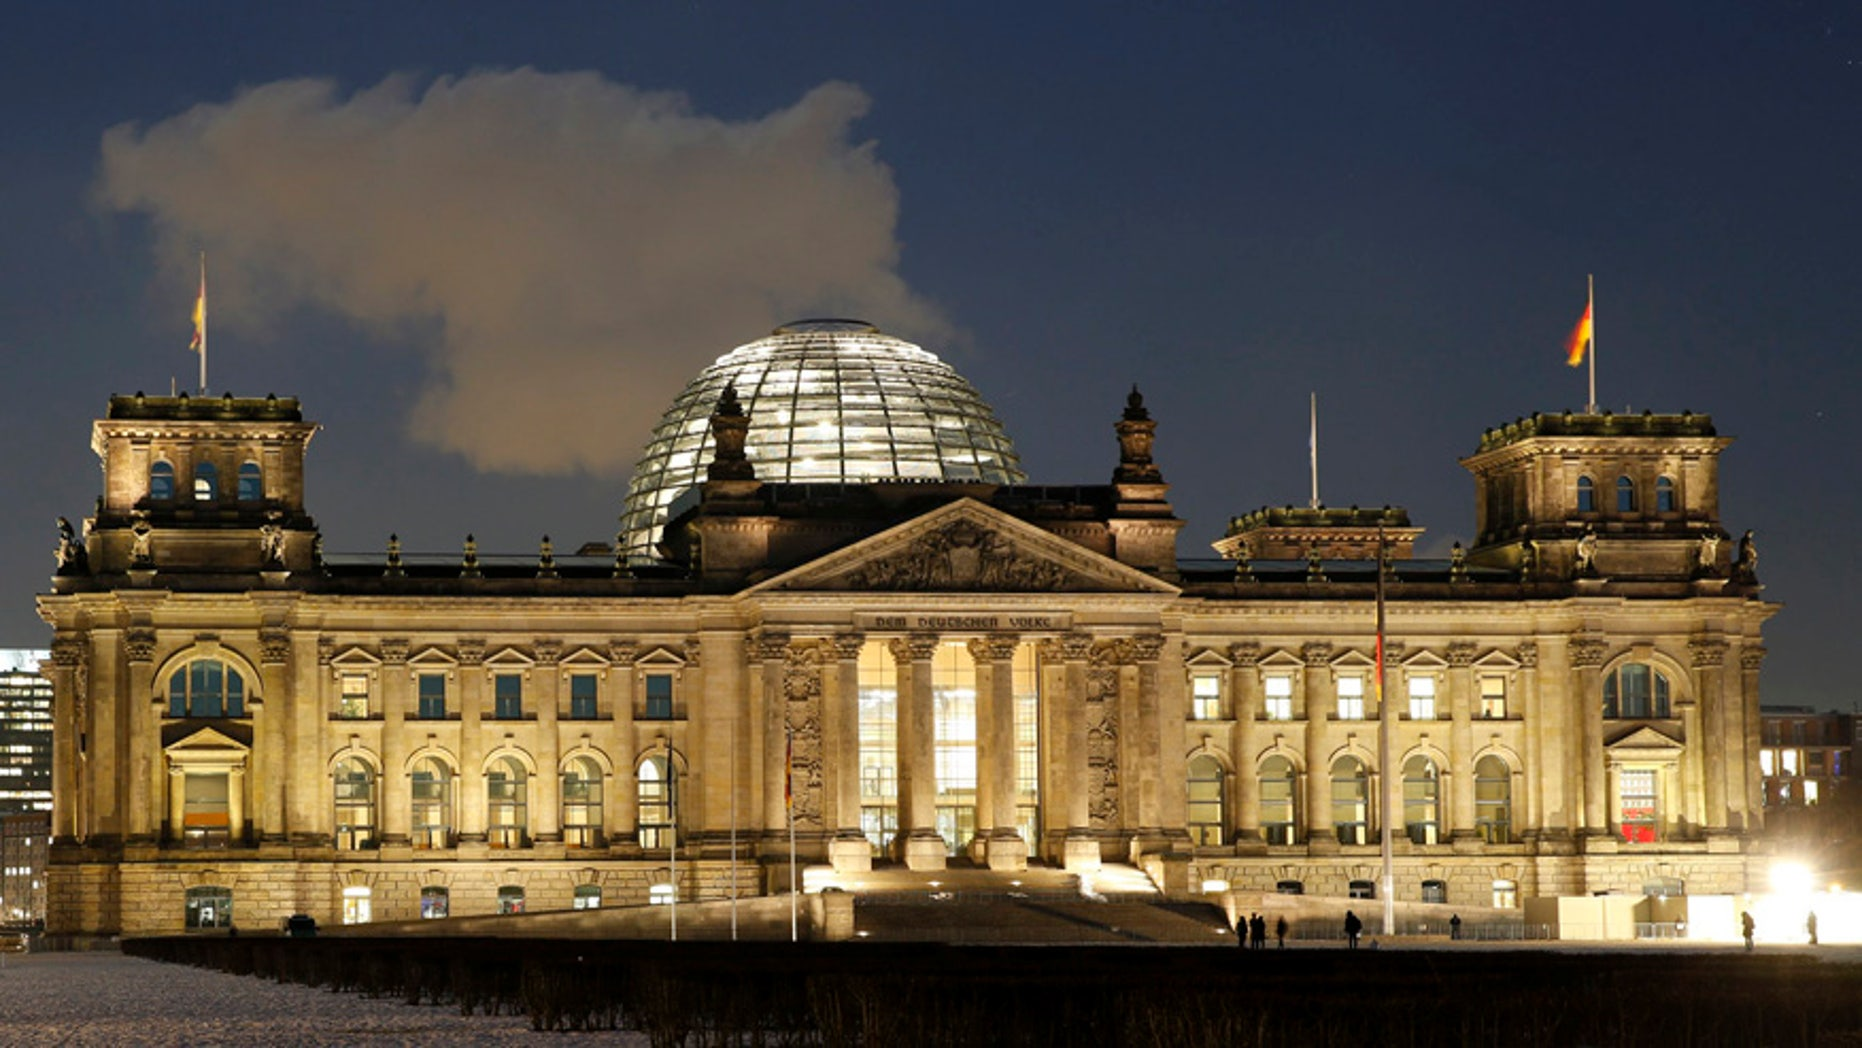 The Reichstag building in Berlin, Germany.